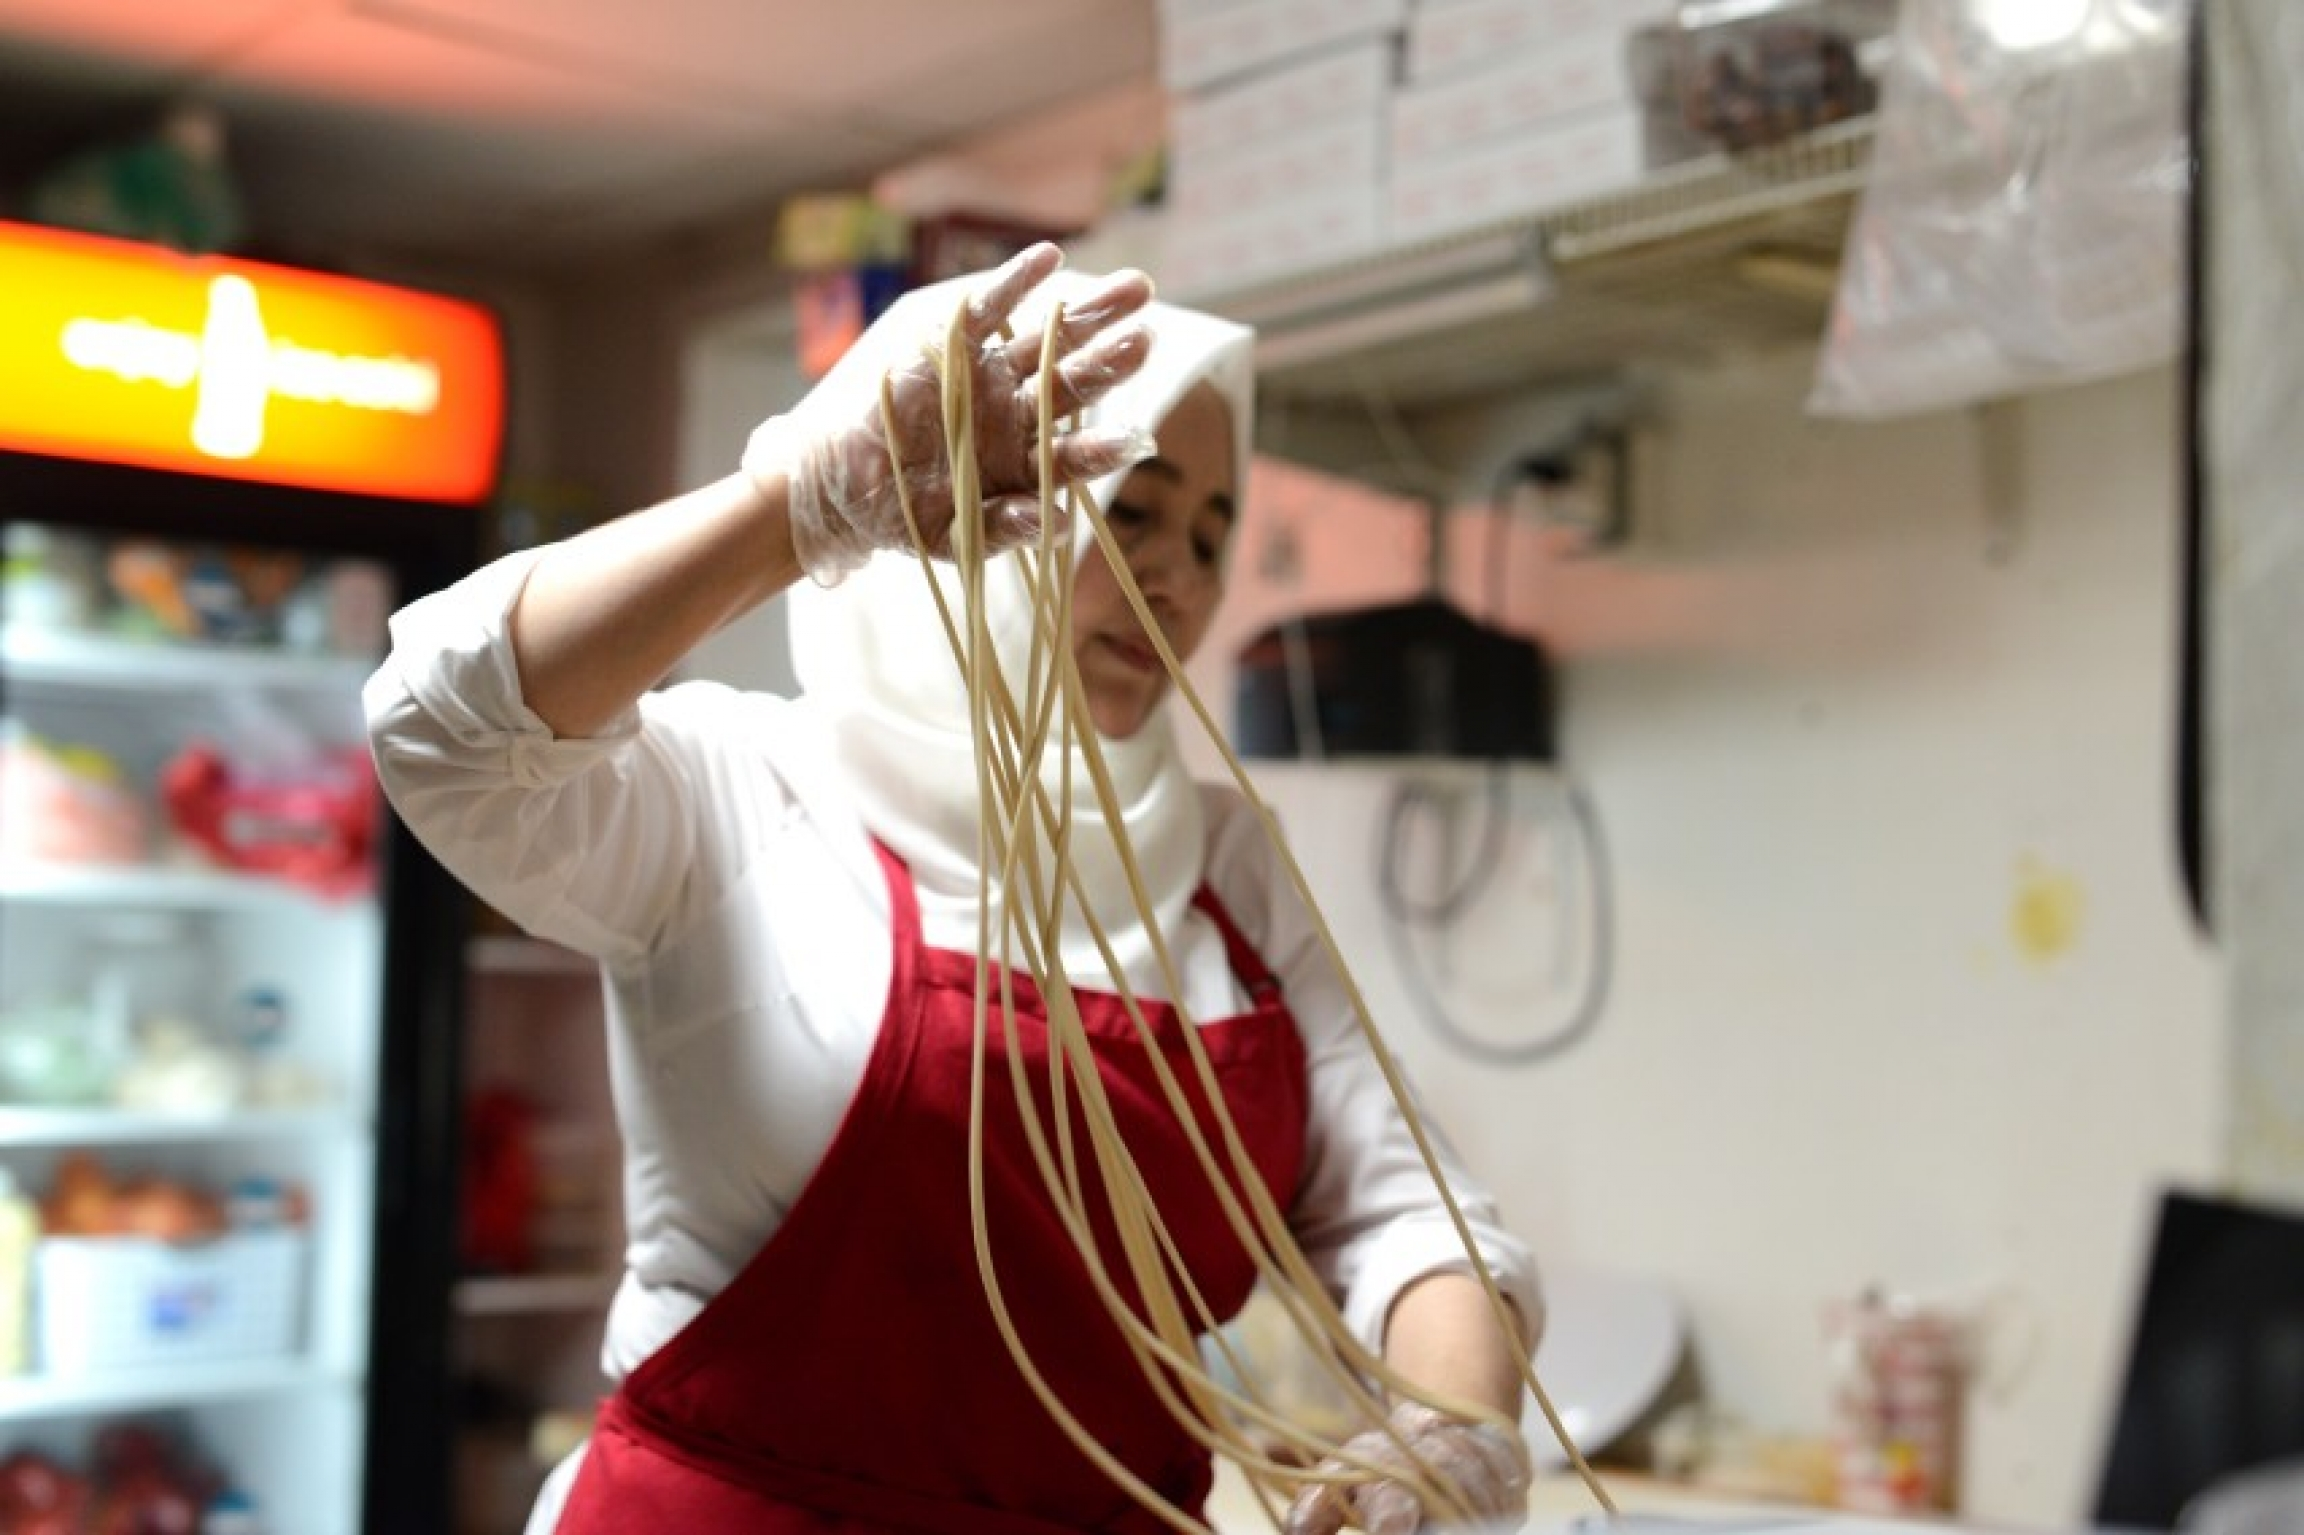 A woman in a kitchen makes noodles.